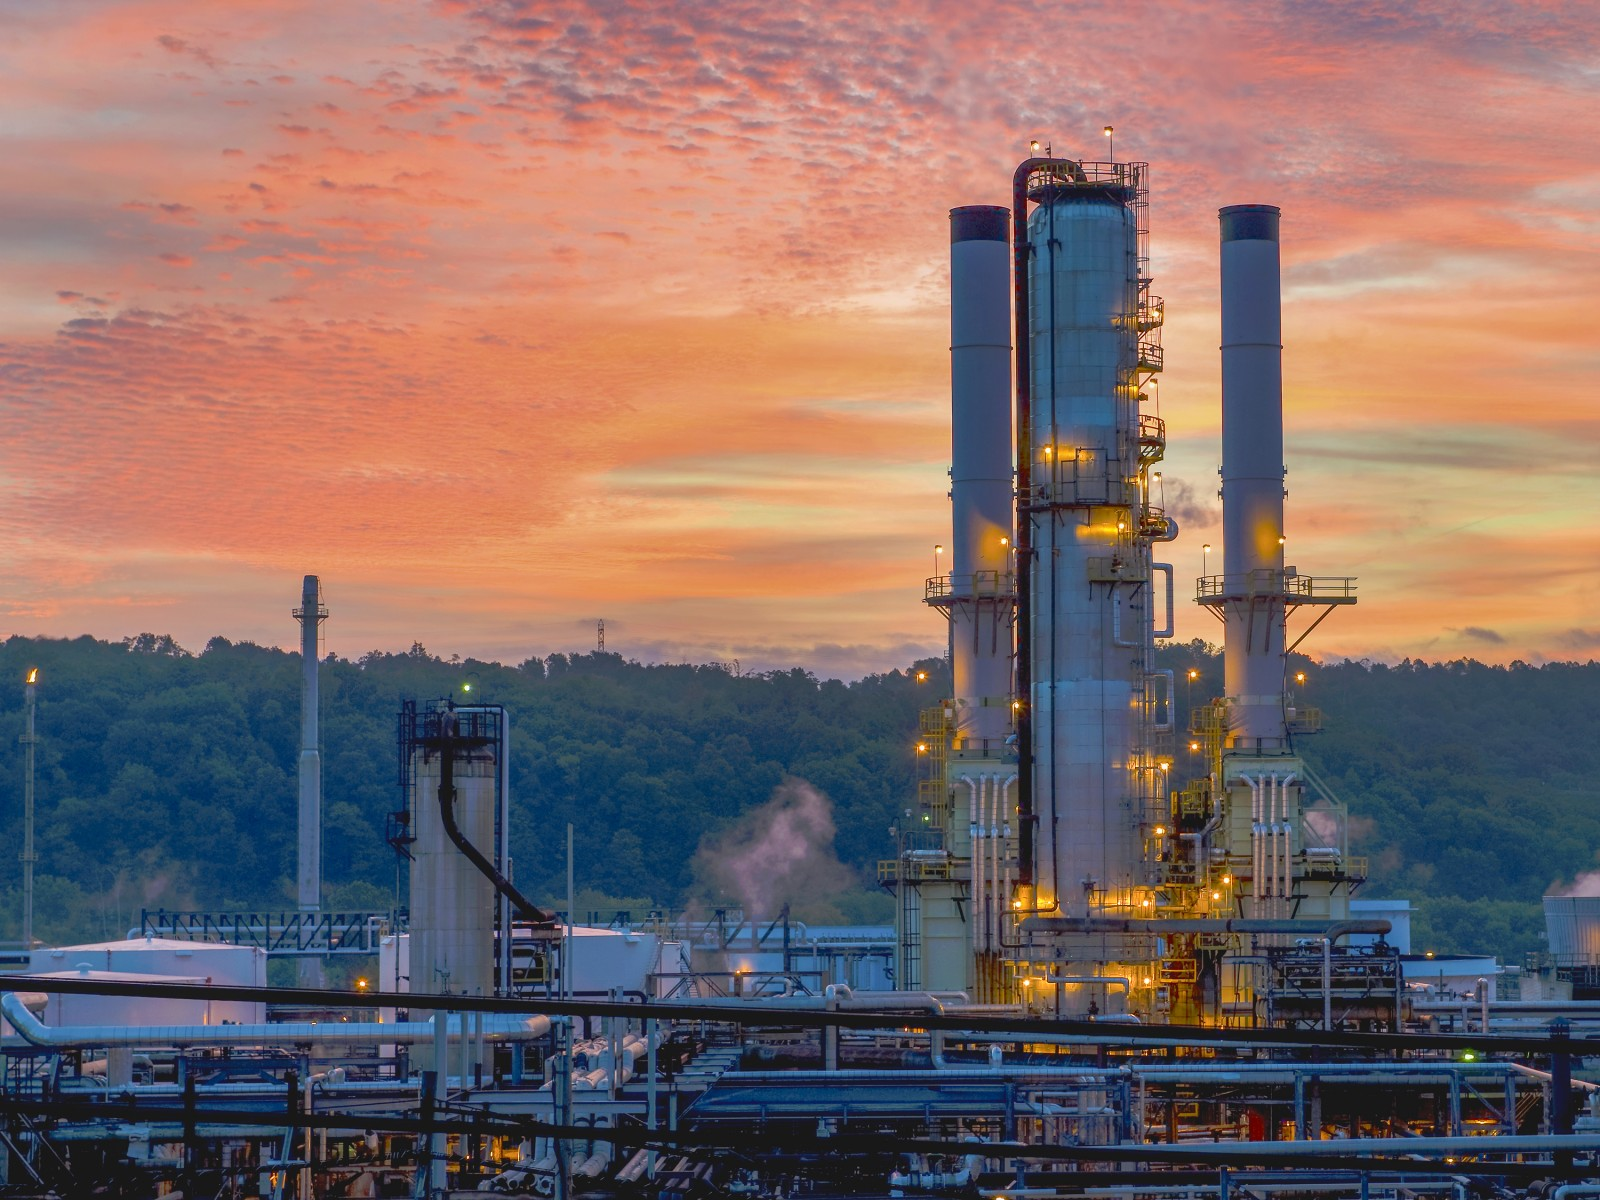 Catlettsburg Refinery at dusk